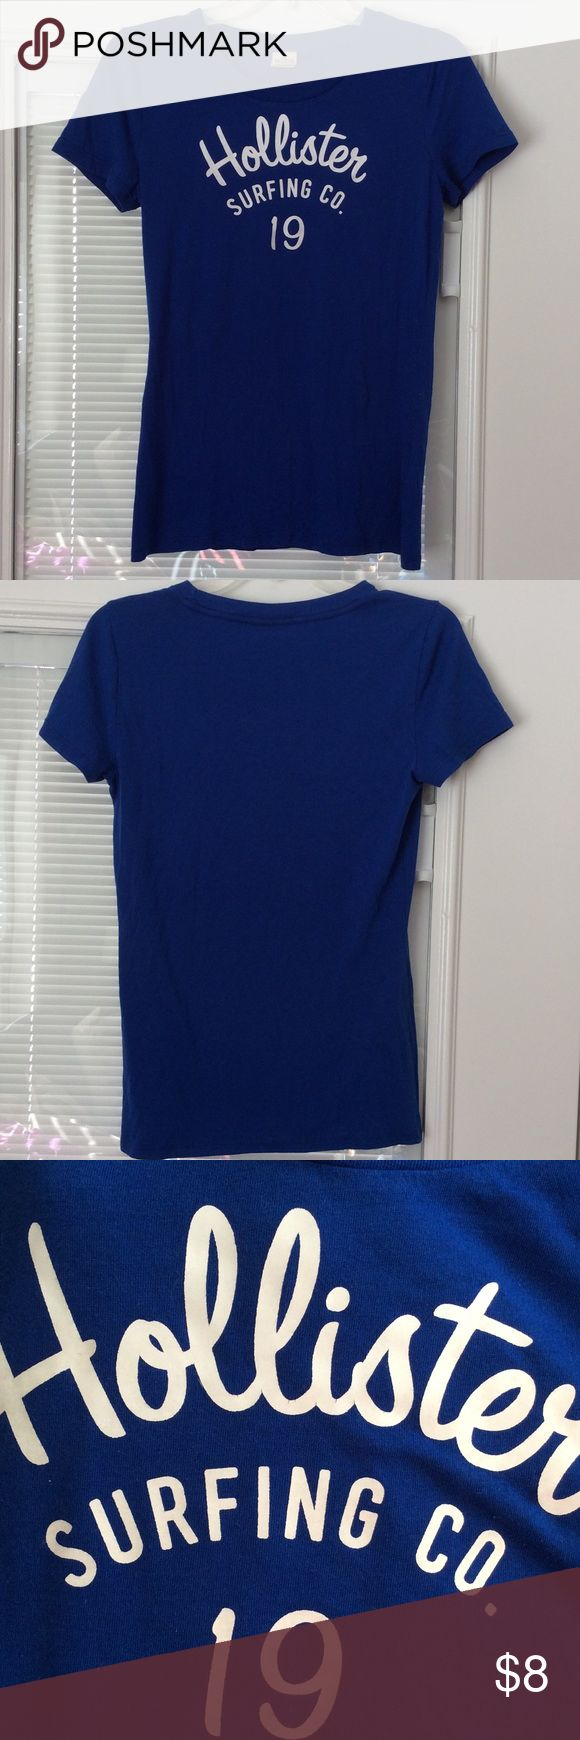 ‼️Buy 2 get 1 FREE‼️ Royal blue tee, great condition. Does have some piling. Hollister Tops Tees - Short Sleeve